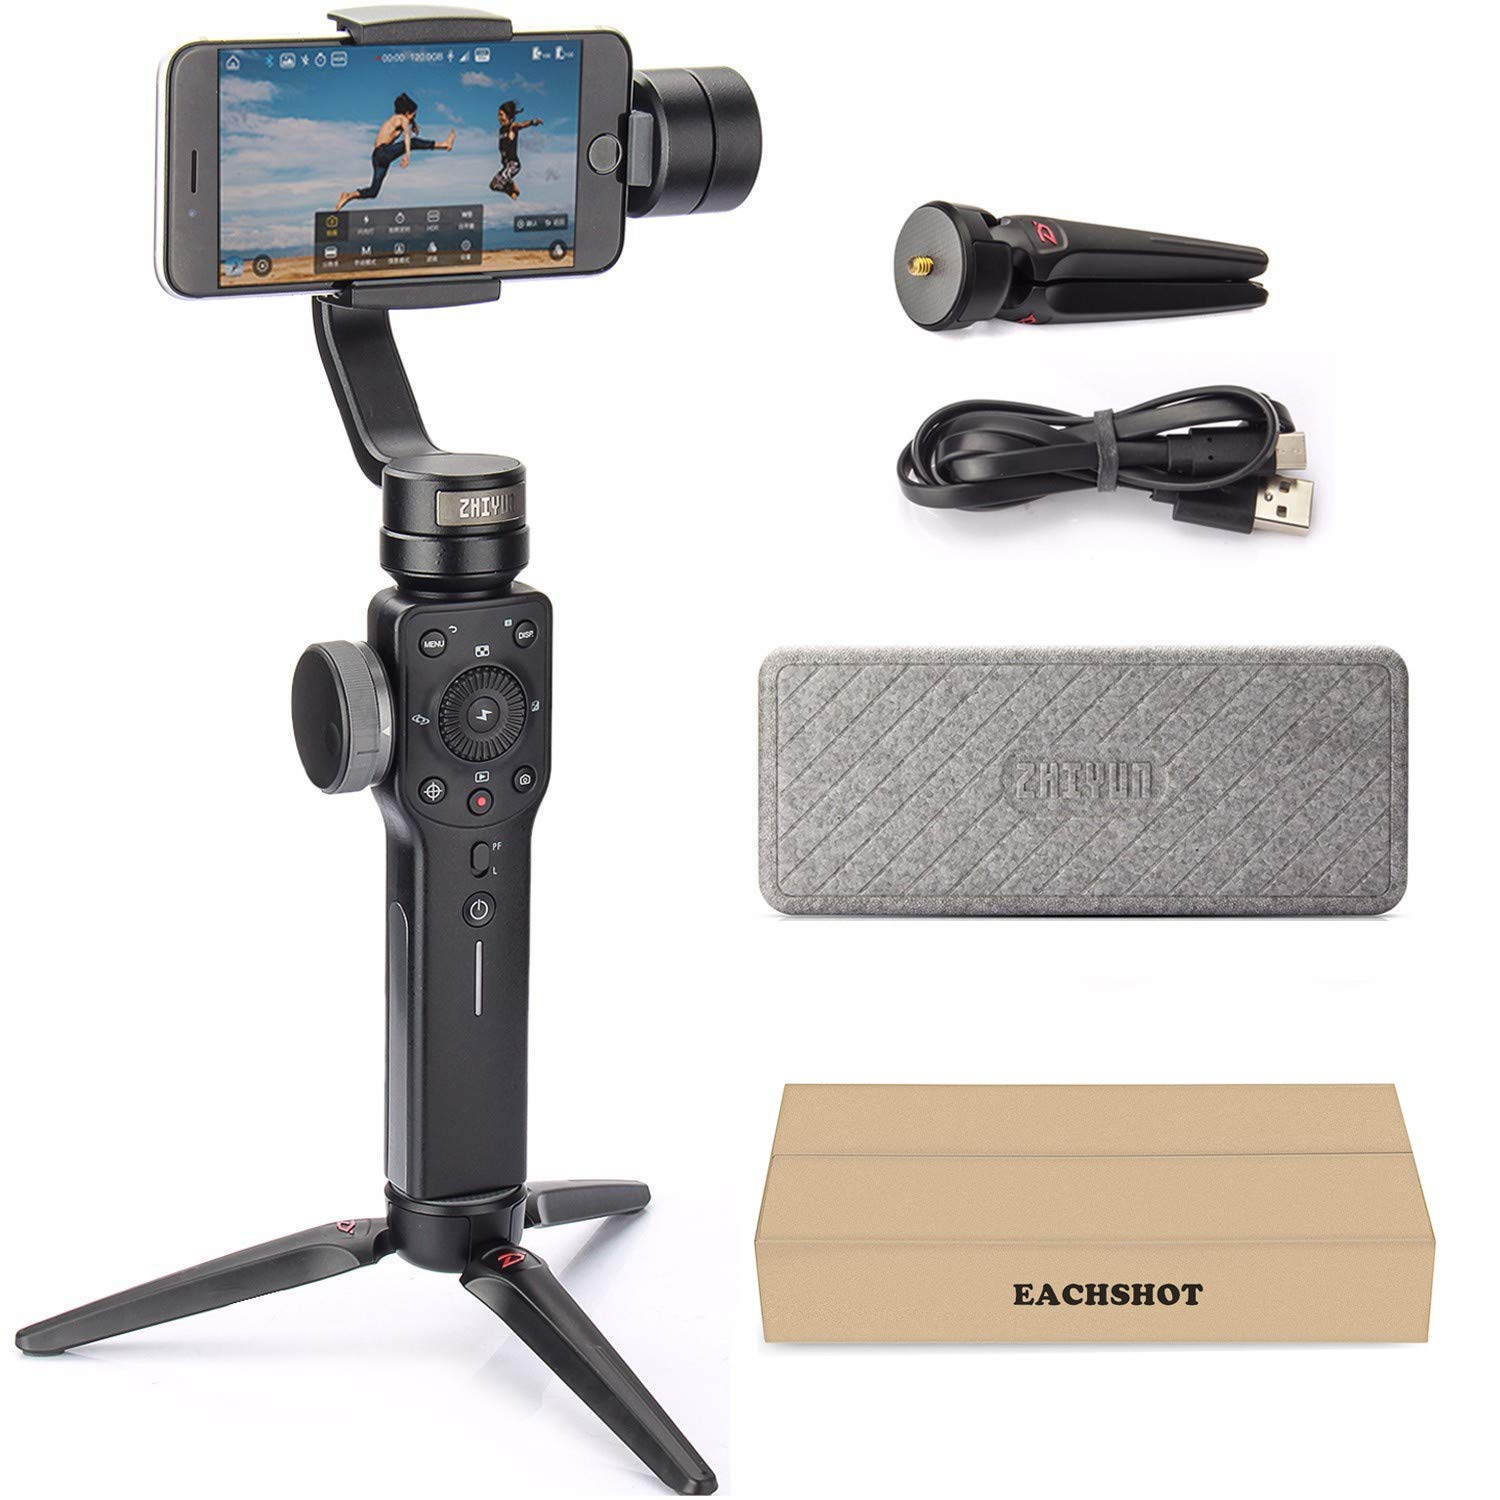 Zhiyun Smooth 4 3-Axis Handheld Gimbal Stabilizer YouTube Video Vlog Tripod for iPhone Xs Max Xr X 8 Plus 7 6 SE Android Smartphone Samsung Galaxy S10 S9+ S9 S8+ S8 S7 Q2 Smooth-Q III 2019 New Black by zhi yun